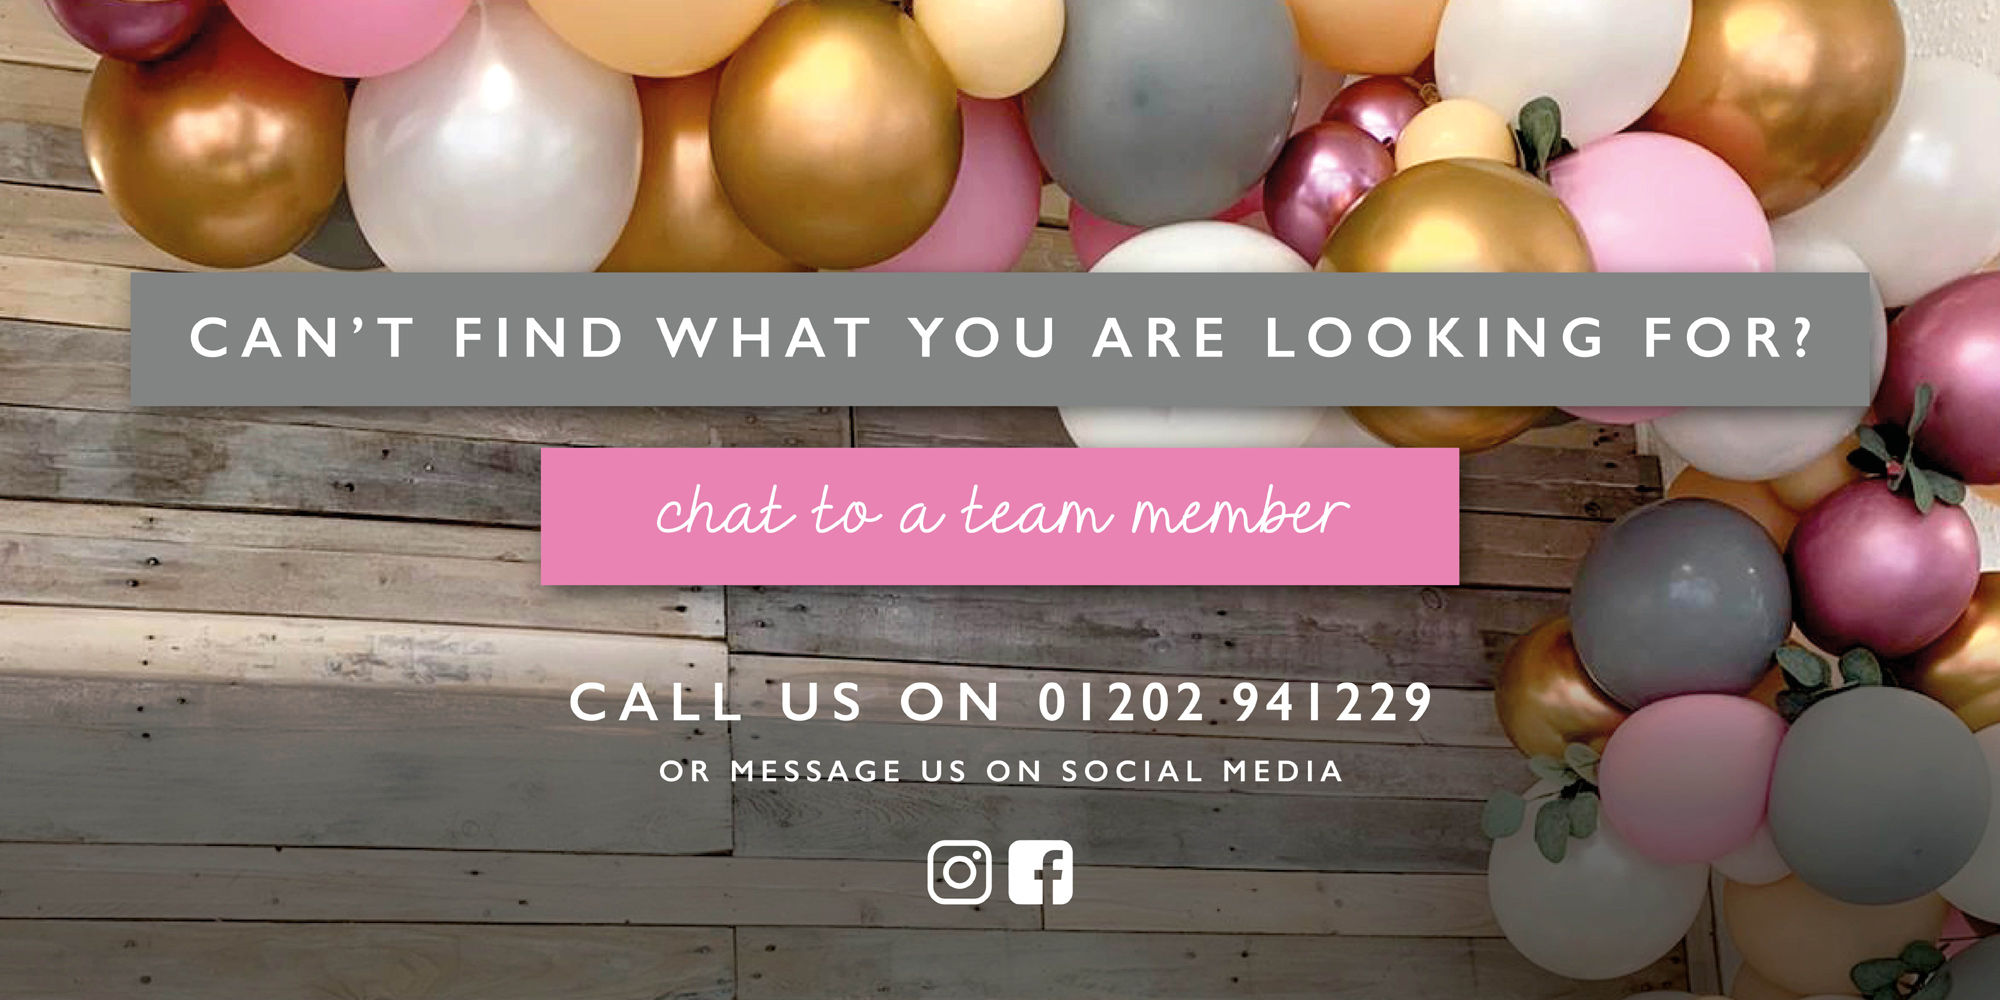 Can't find what you're looking for, contact a team member